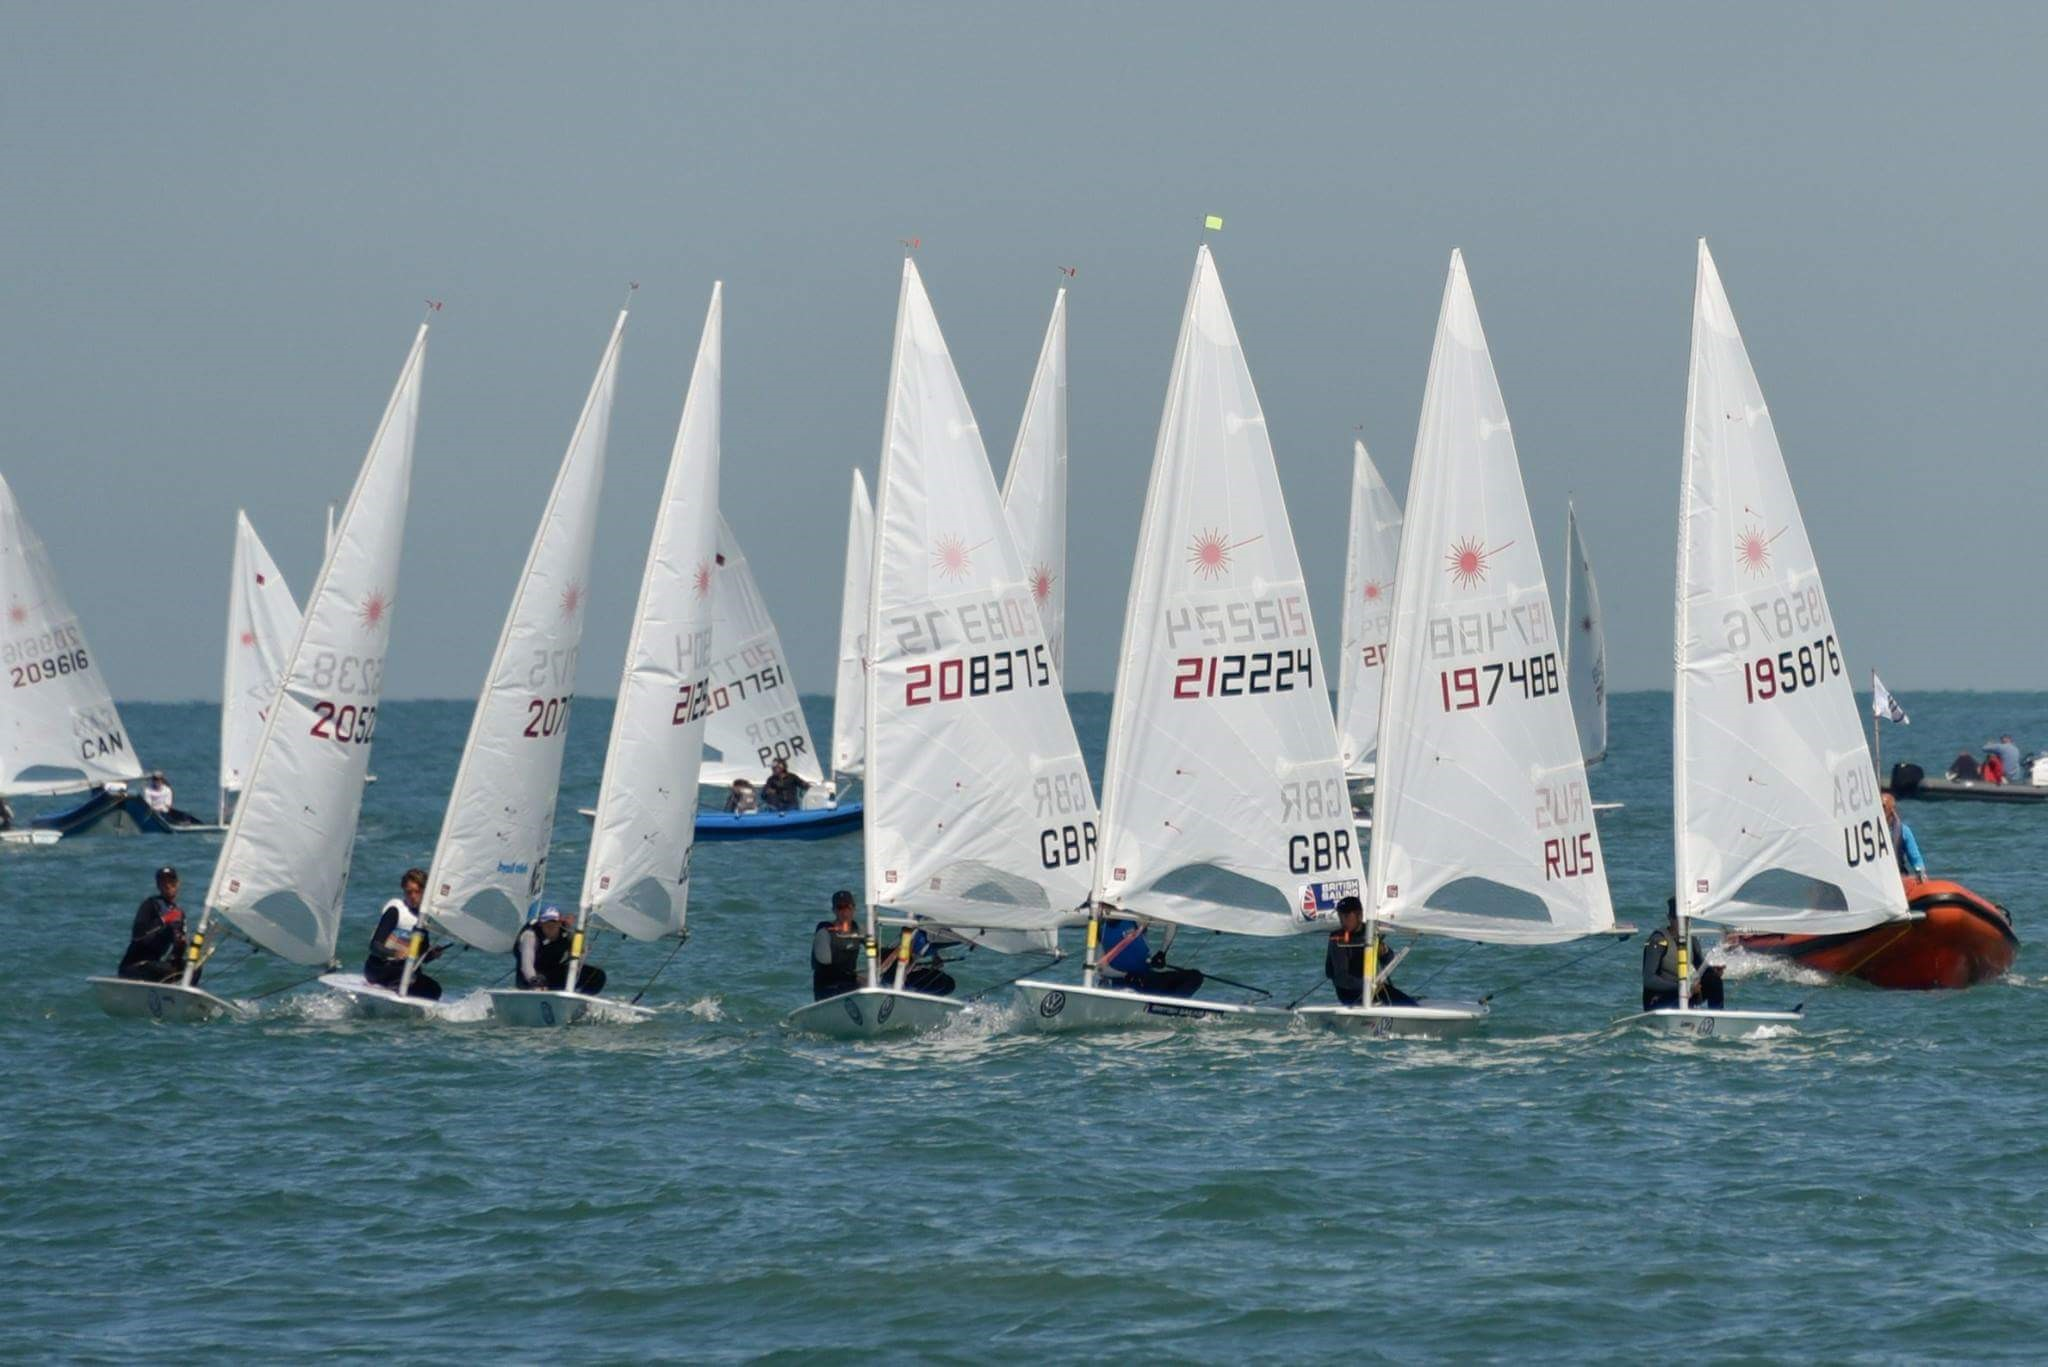 We had light winds on the penultimate day and despite attempting a start racing was soon abandoned for the day.